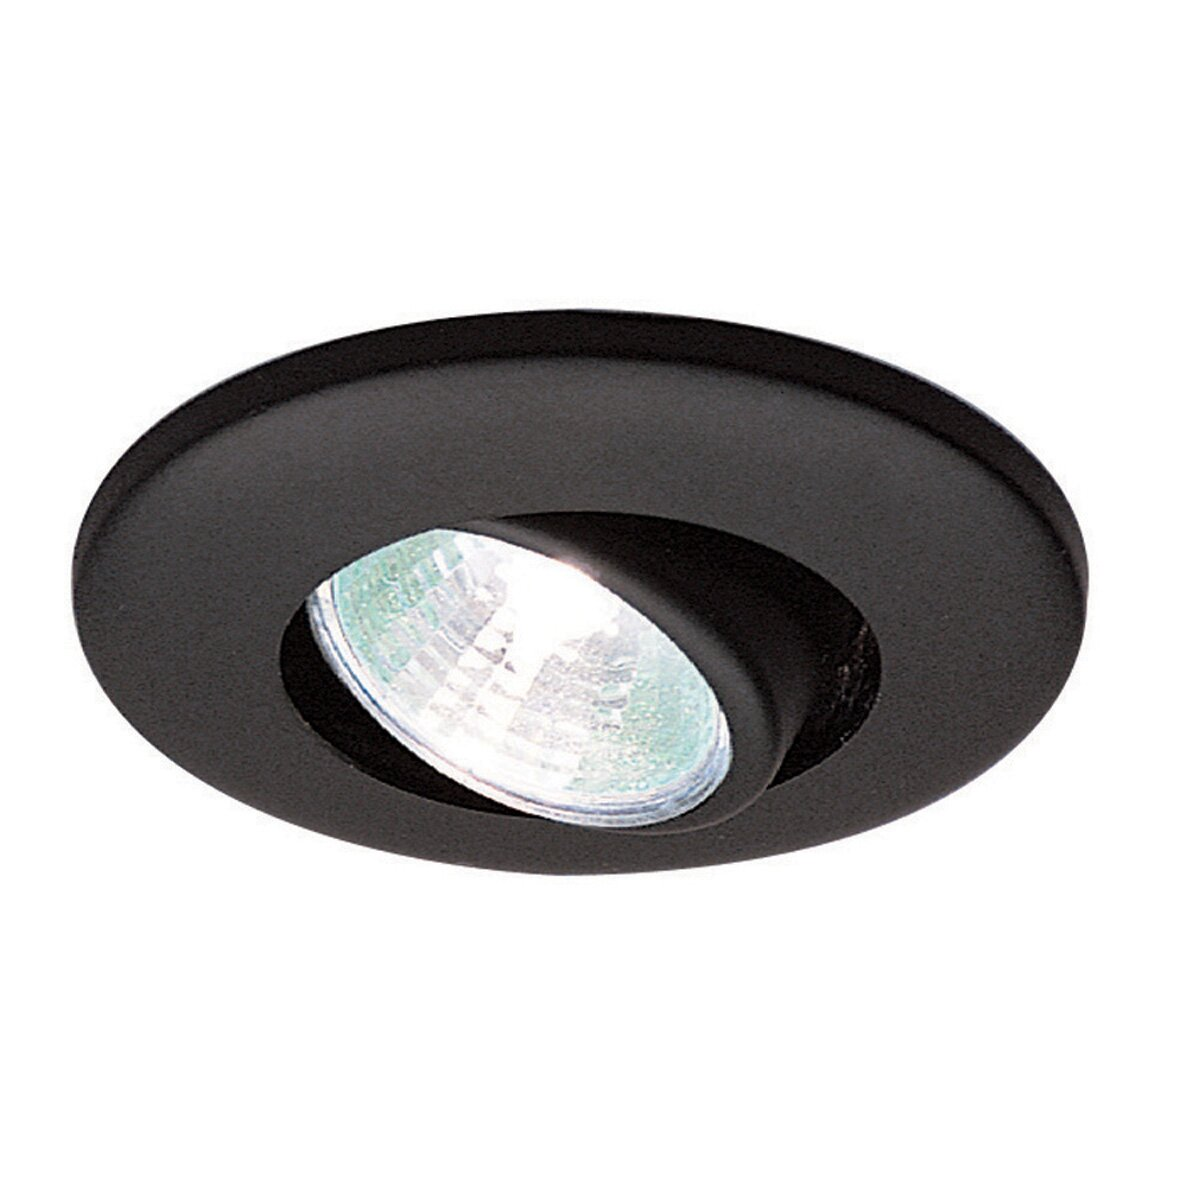 WAC Lighting Low Voltage Eyeball Miniature Cabinet Recessed Kit